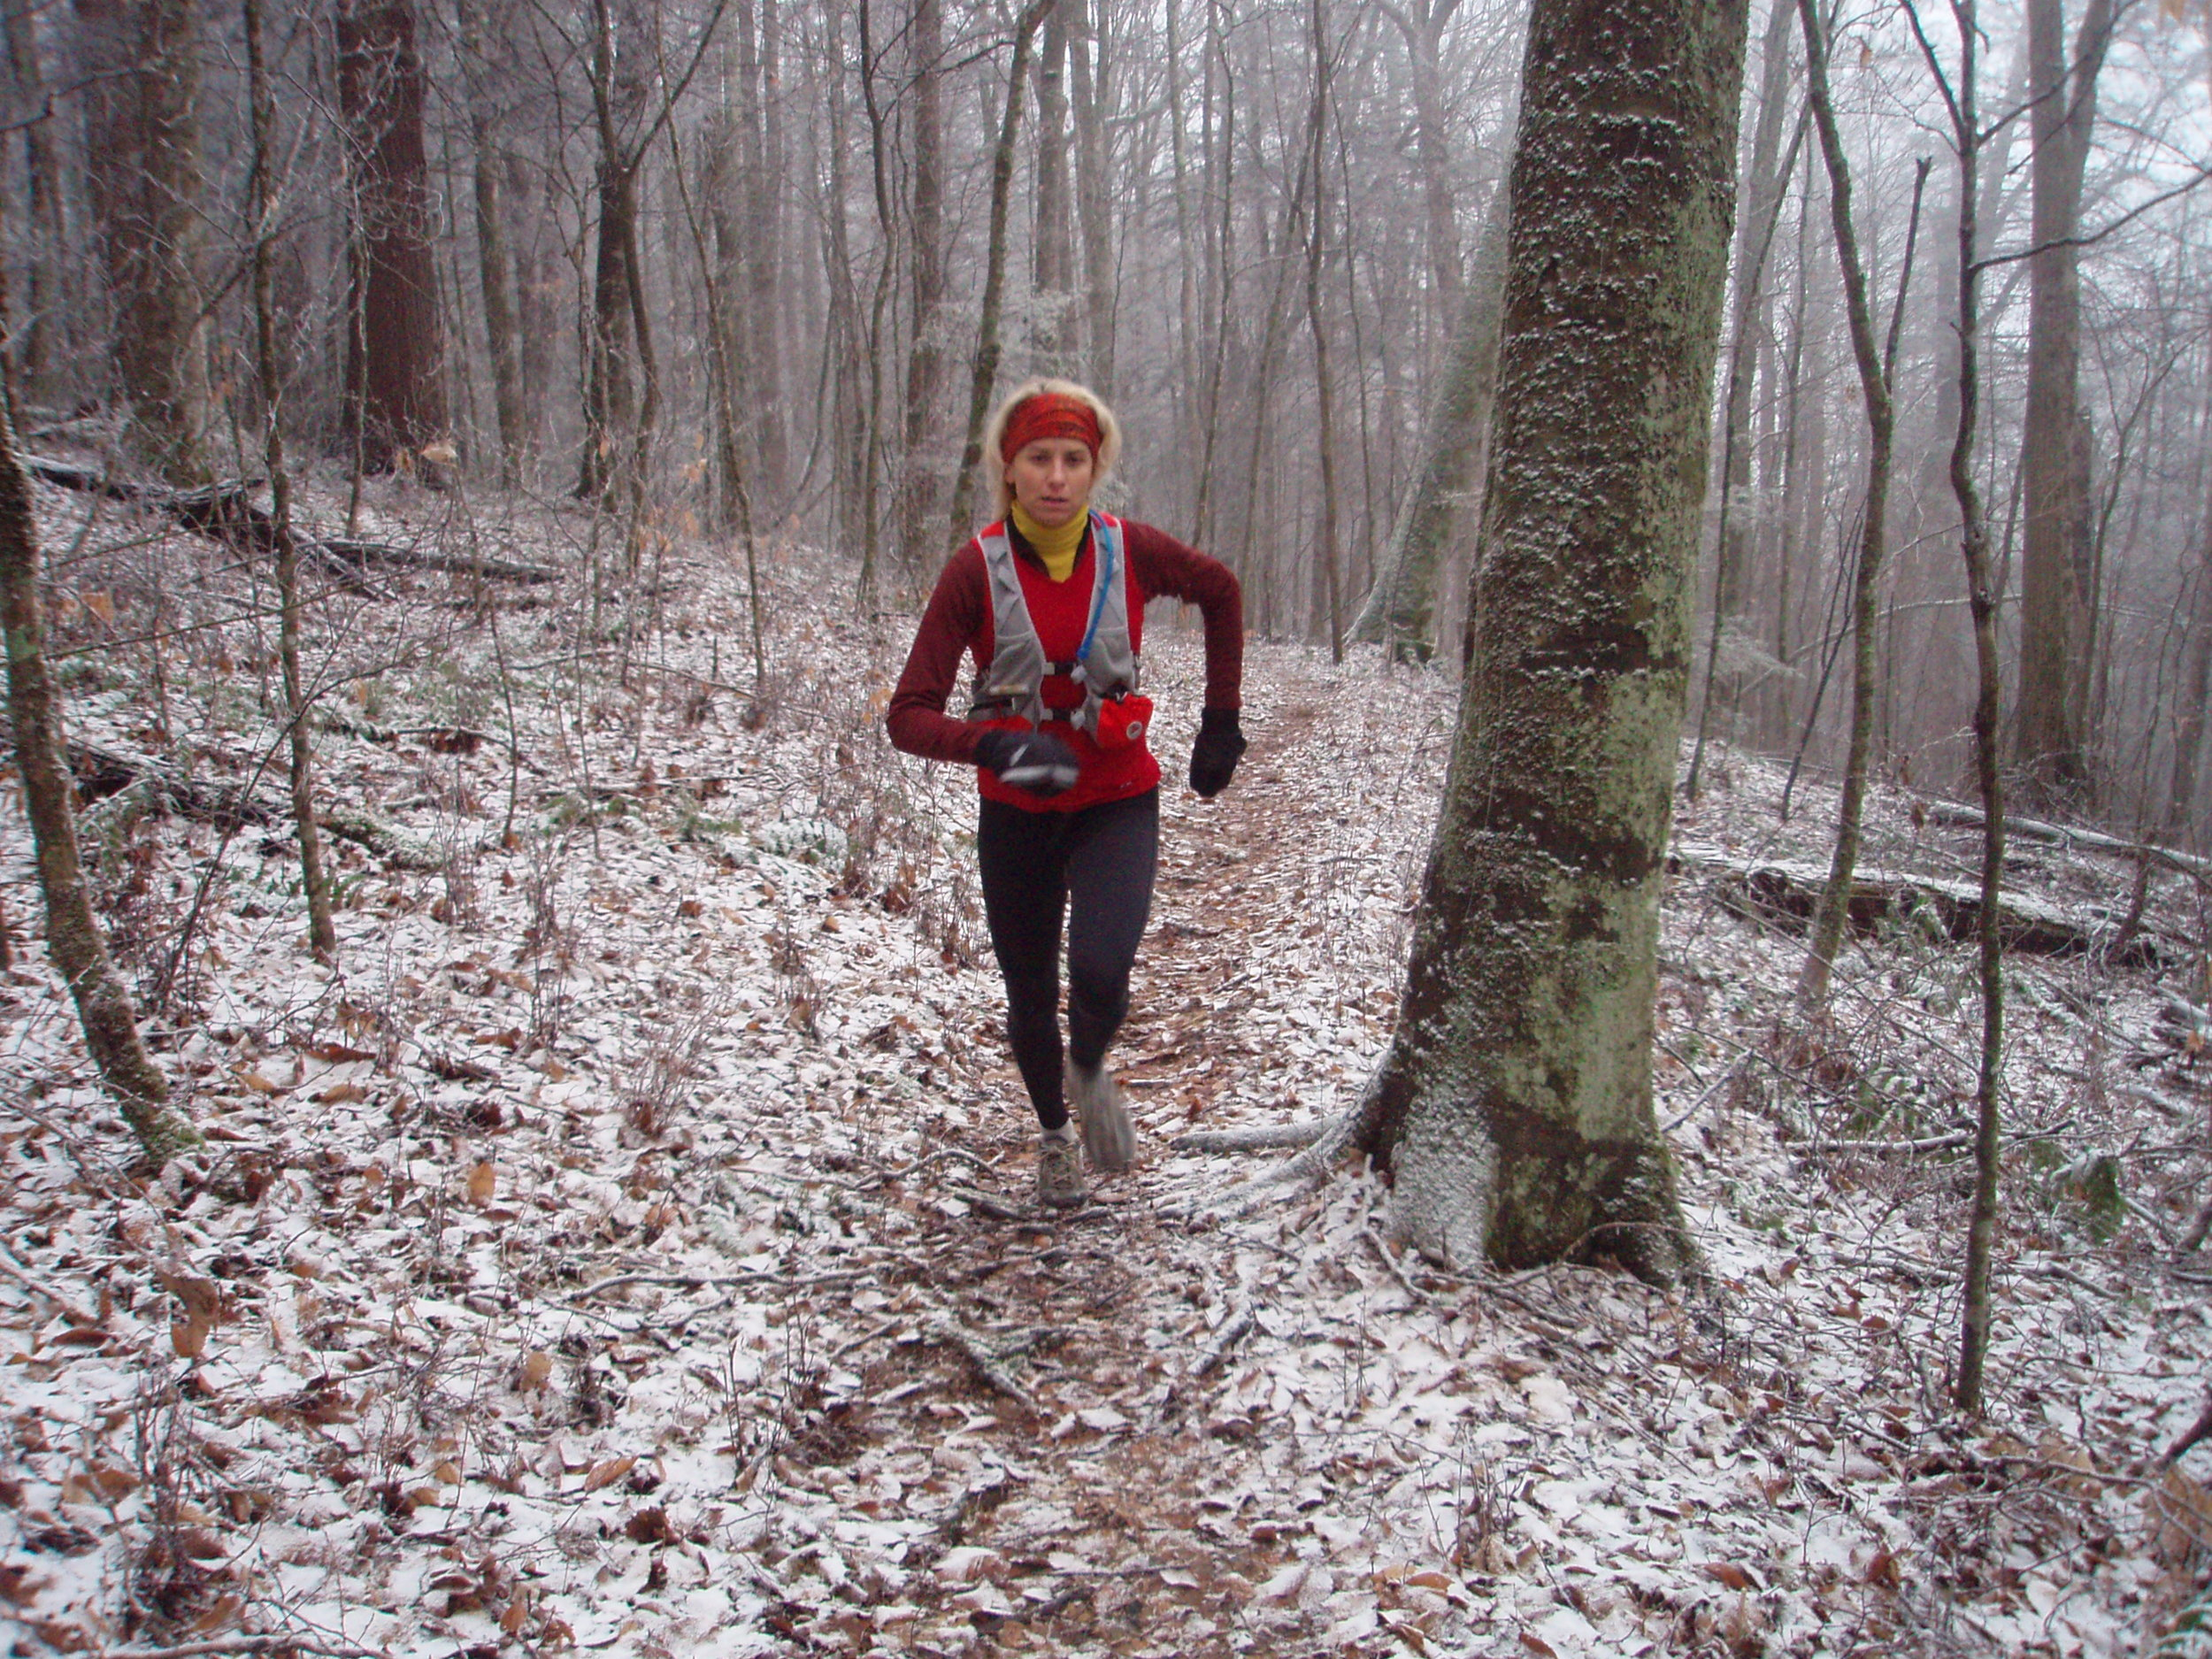 Susan Donnelly running in winter on snowy trail.